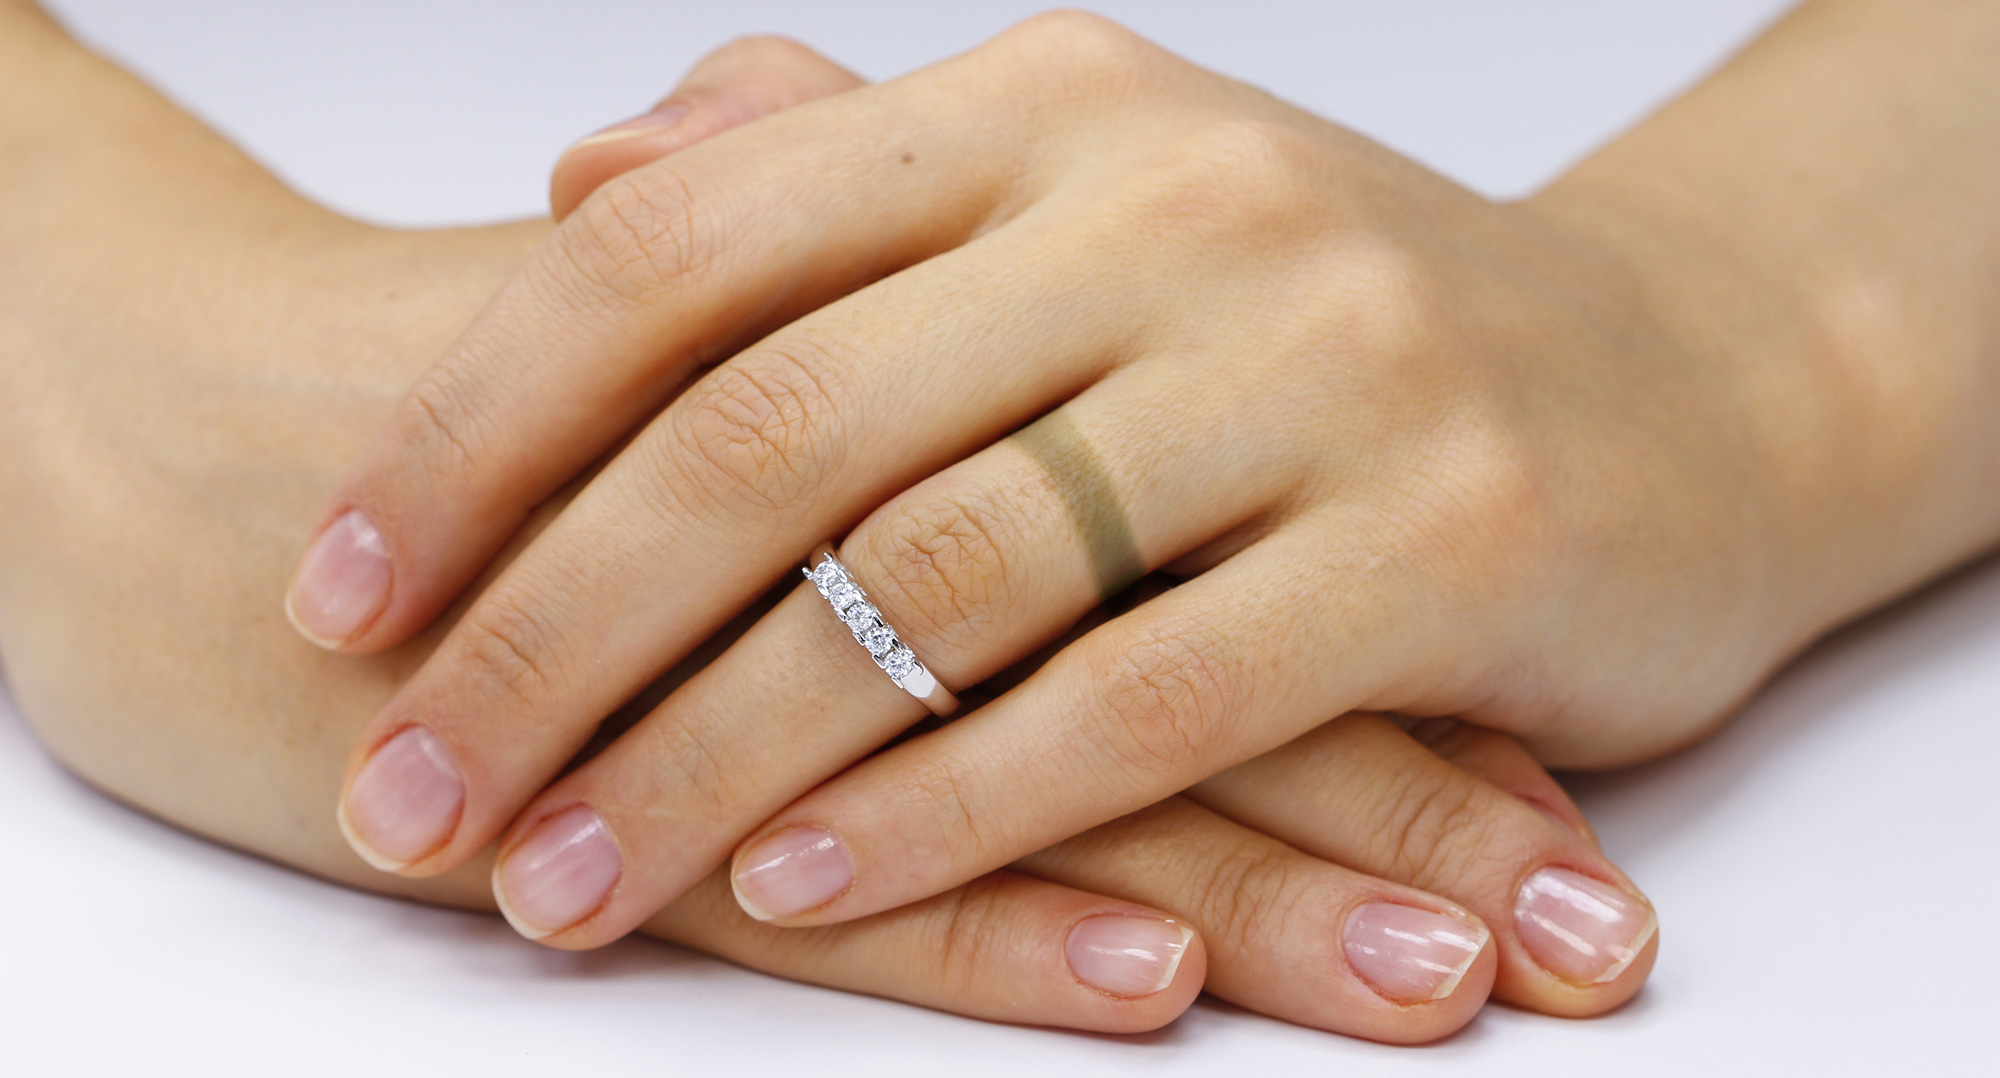 Gold Rings Turning Your Fingers Black? | Pav & Broome Fine Jewelry